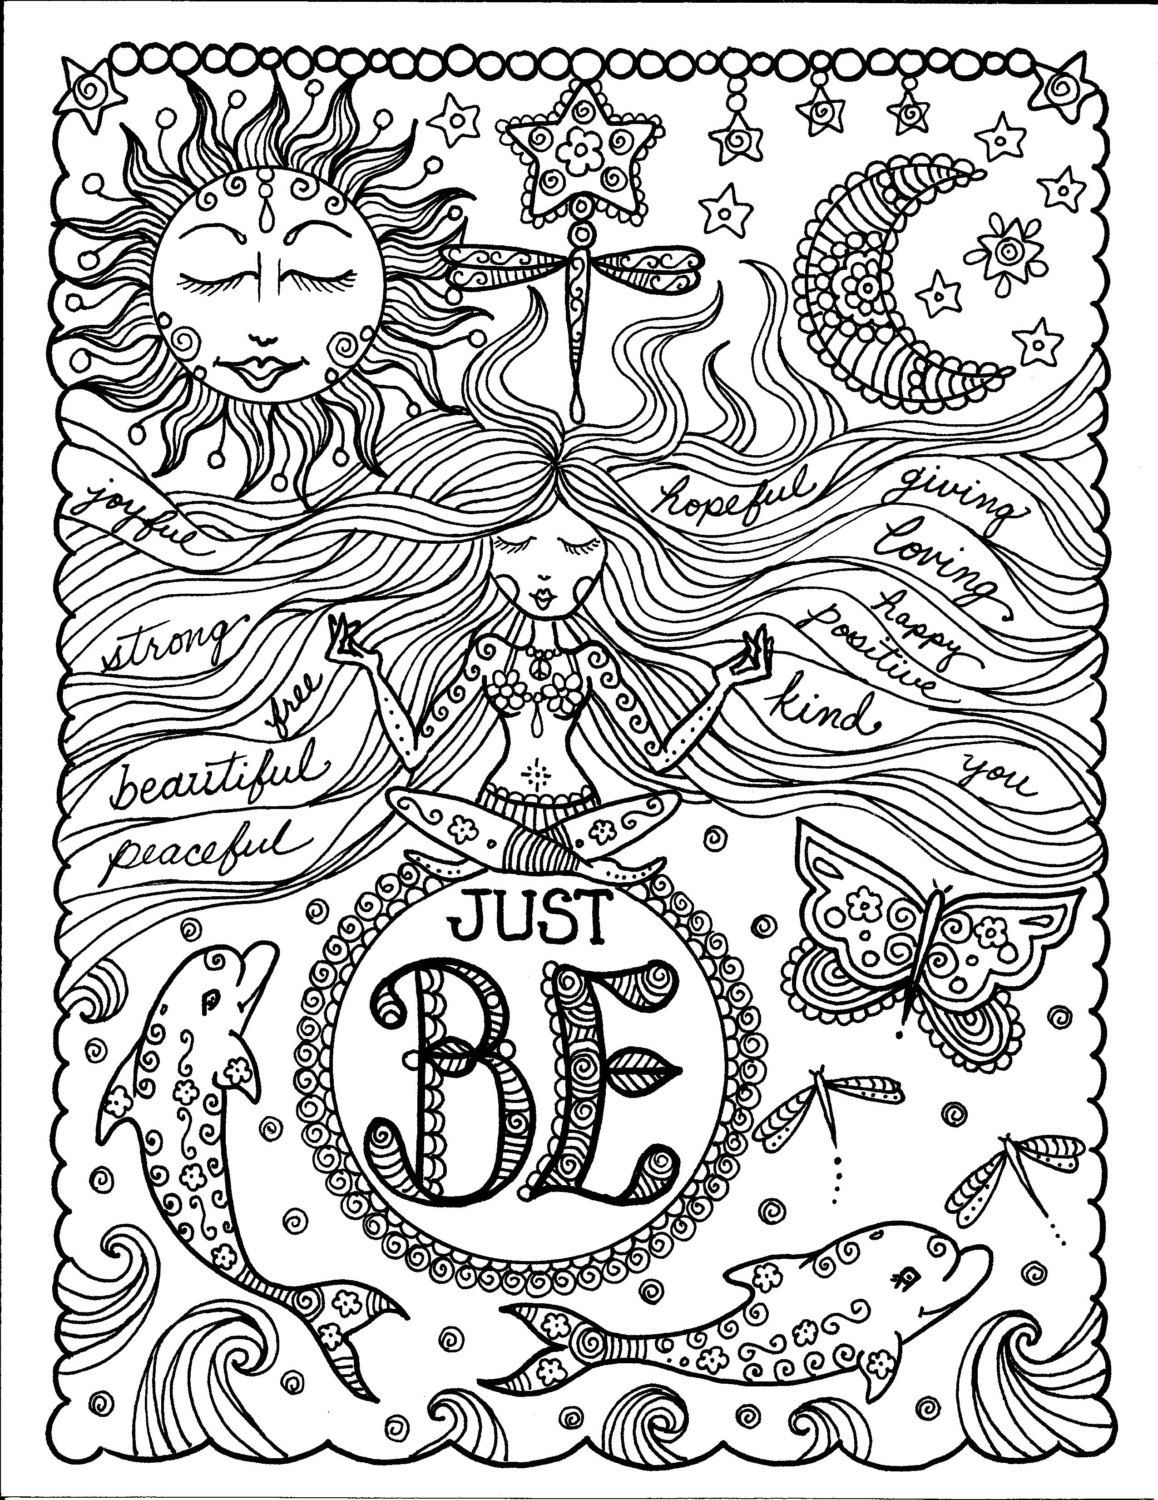 Coloring book inspirational - Instant Download Be Brave Coloring Book Inspirational Art For You To Color 5 Pages Of Fun